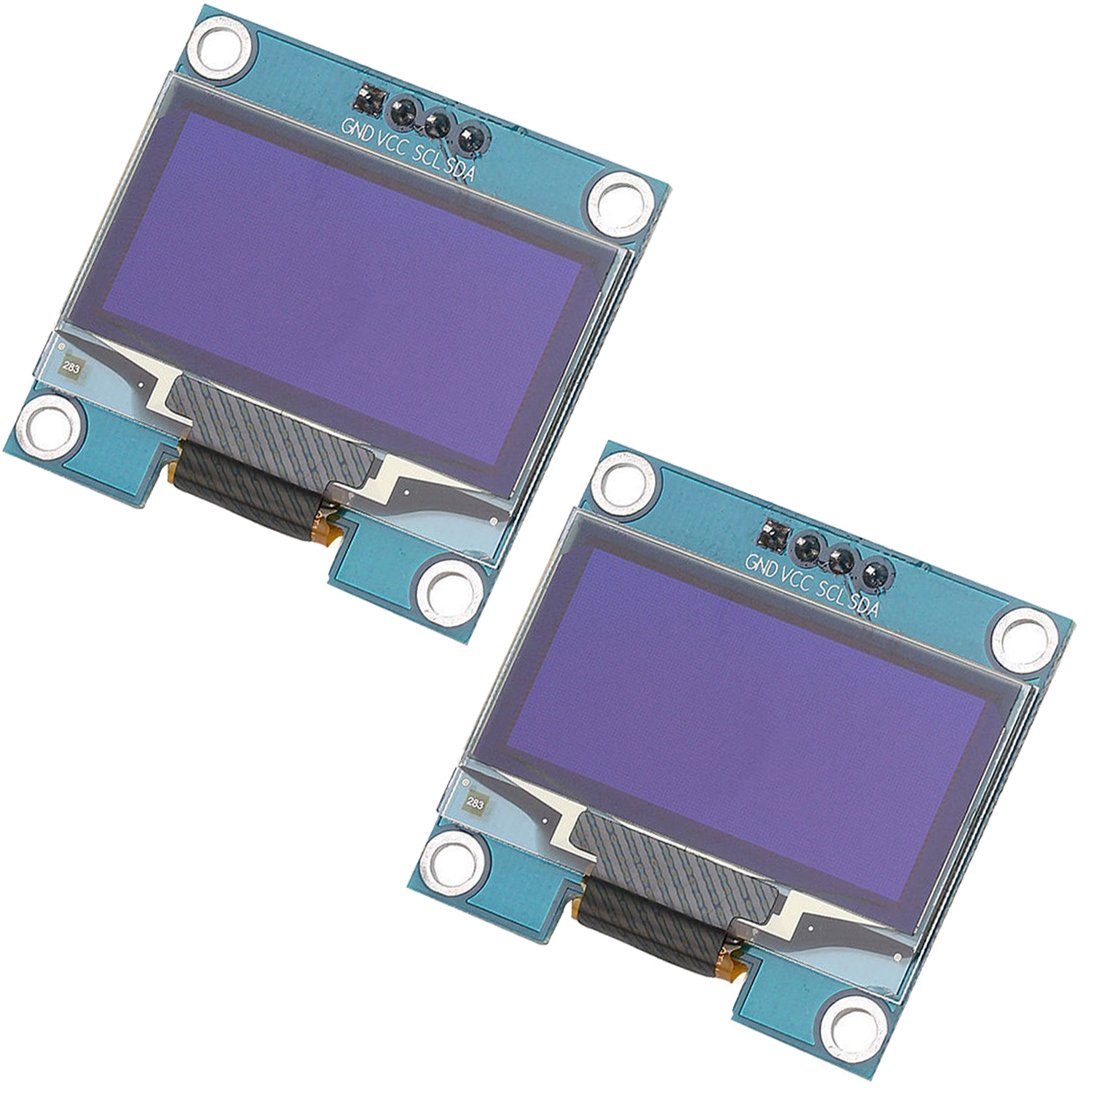 HiLetgo 2pcs 1.3'' IIC I2C Serial 128x64 SSH1106 SSD1306 OLED LCD Display LCD Module for Arduino AVR PIC STM32